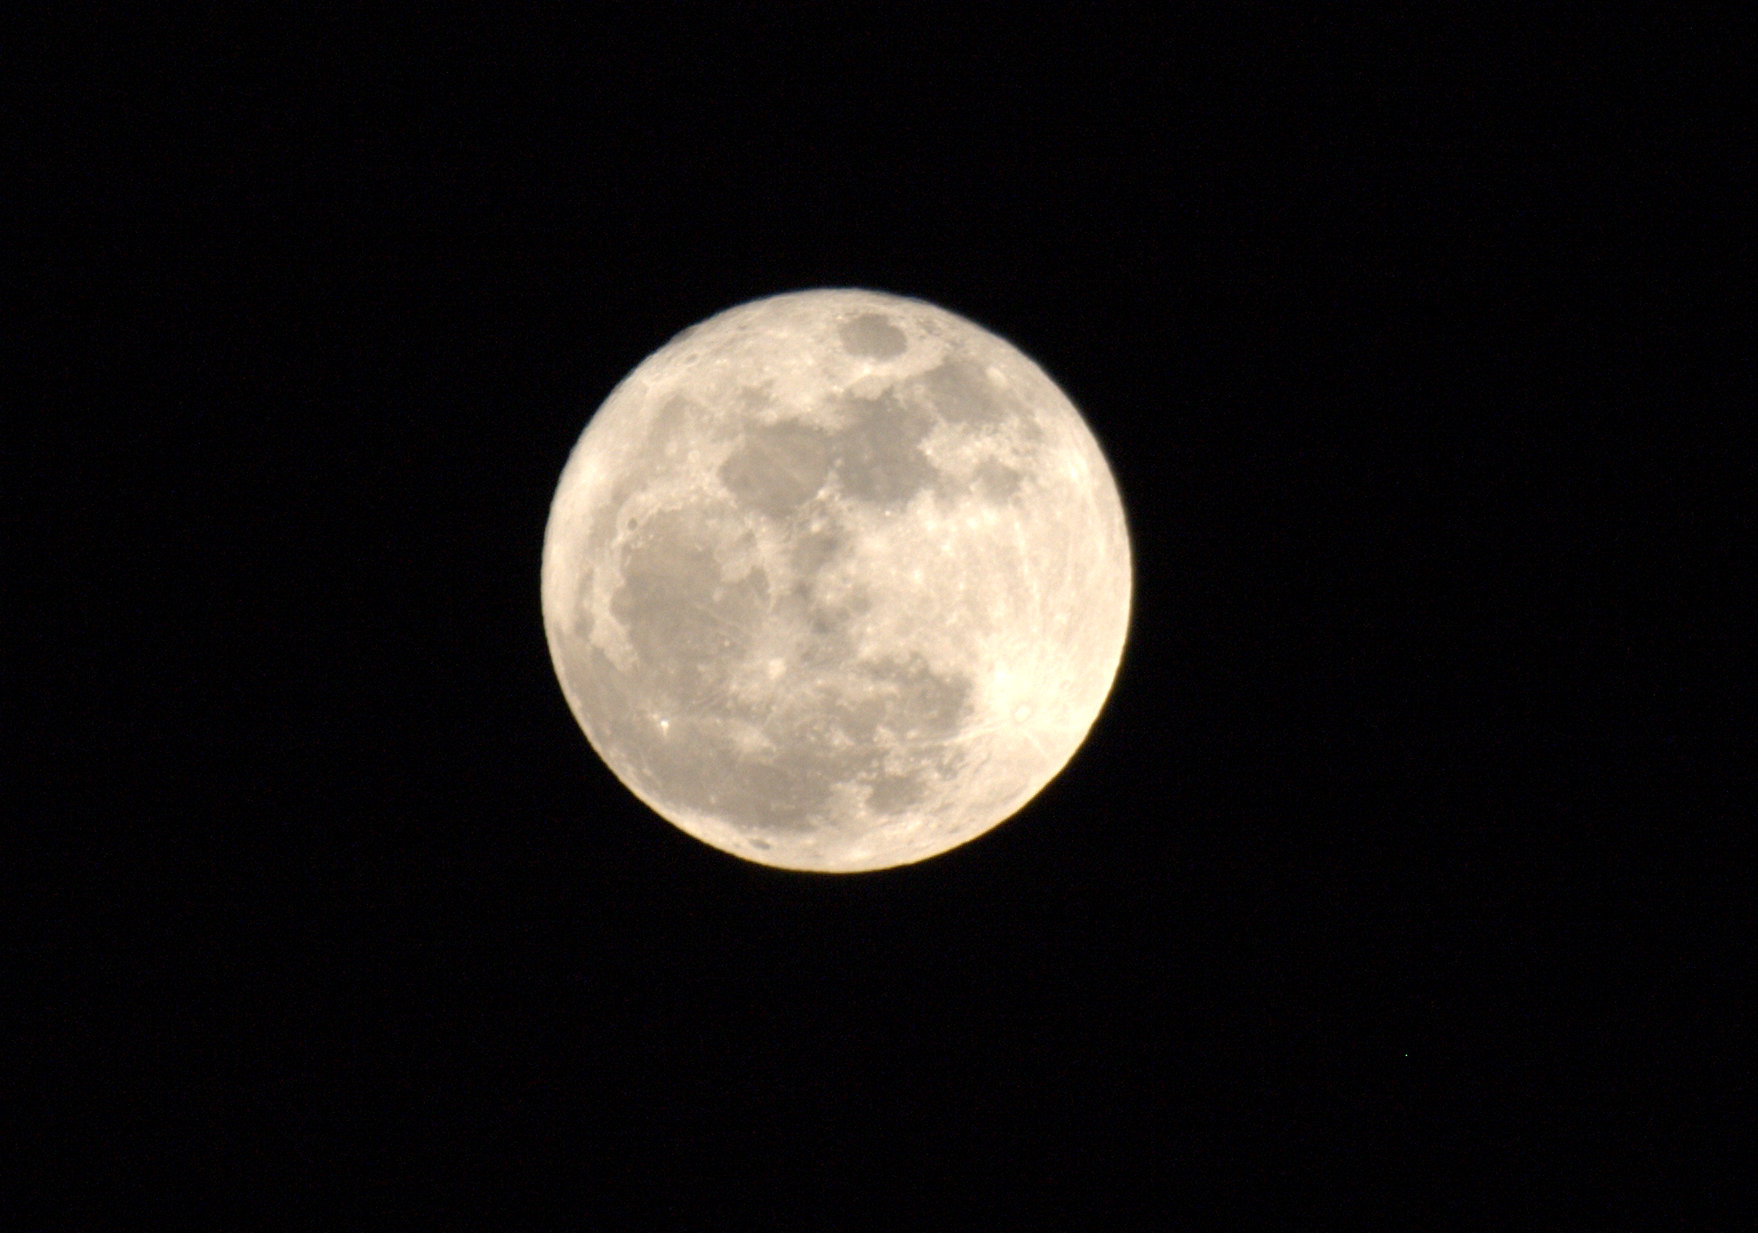 Super Moon March 20, 2011